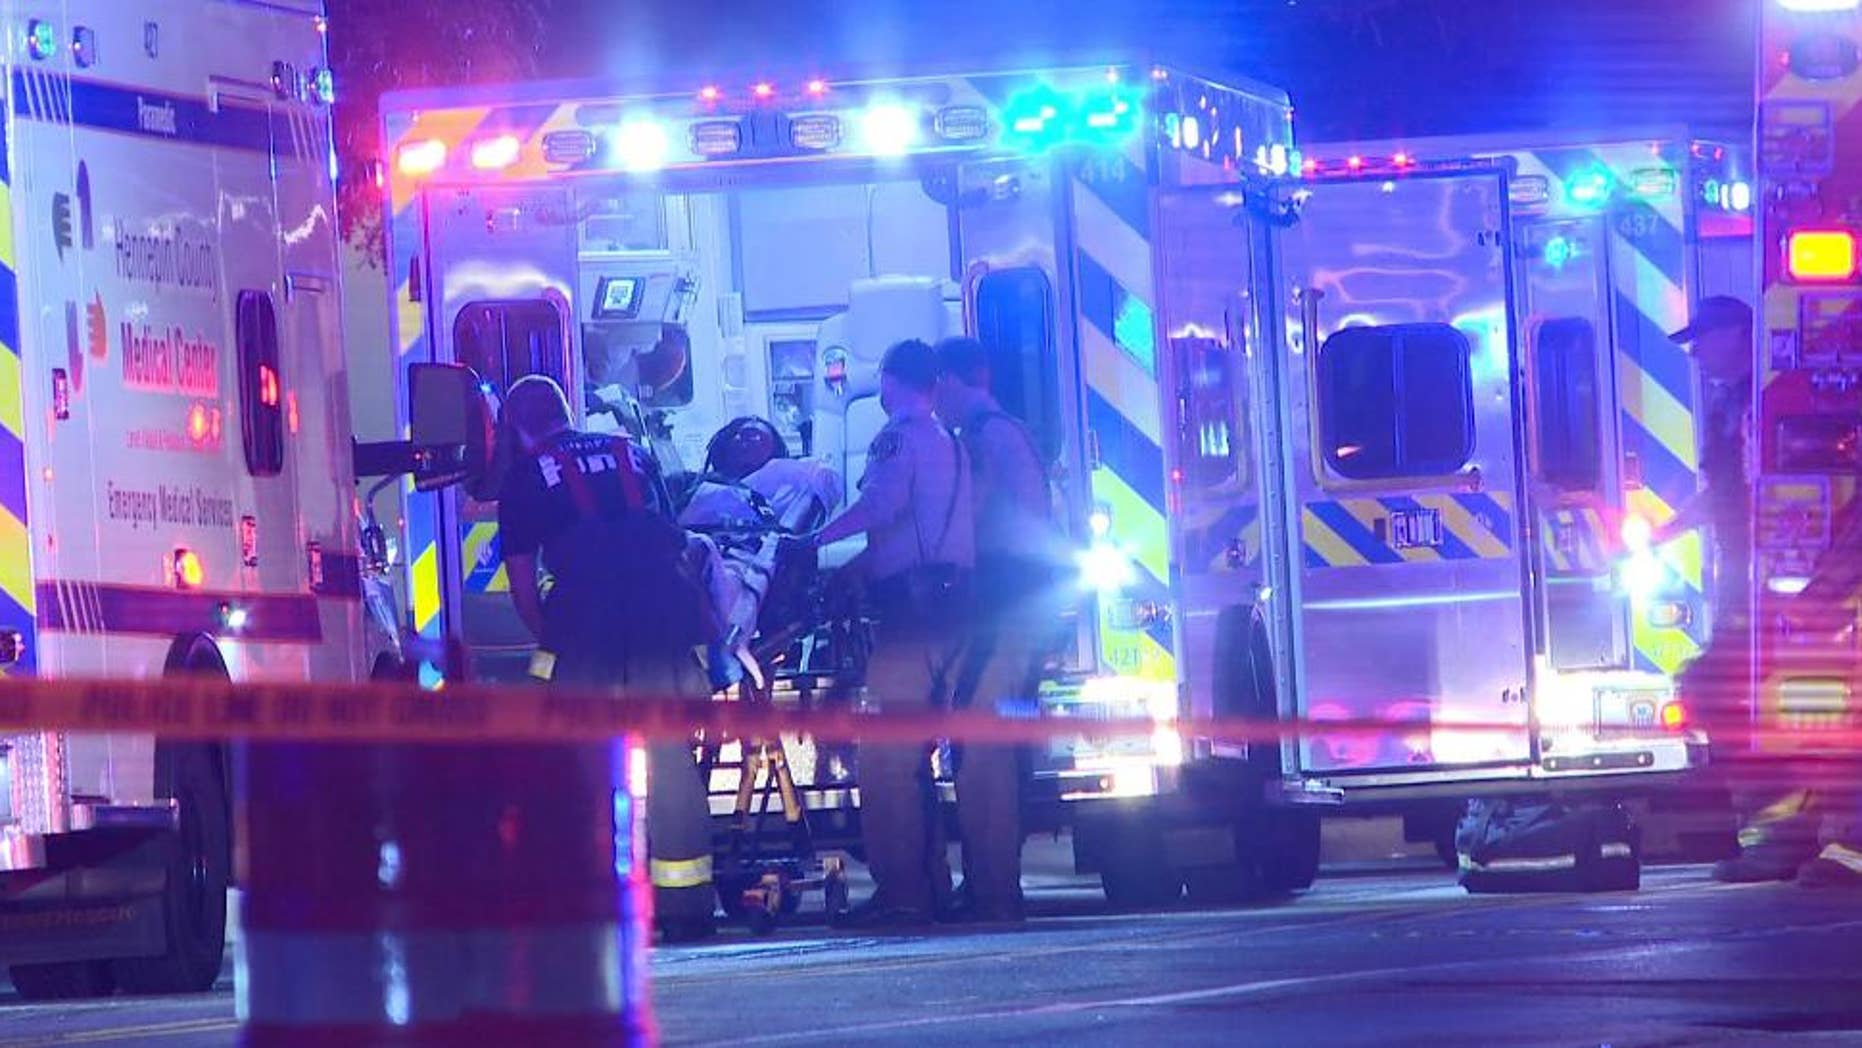 In this photo provided by KARE, a person is brought into an emergency vehicle after a shooting early Monday, Oct. 3, 2016, in Minneapolis. Minneapolis police said multiple people have been wounded in shootings in downtown Minneapolis. (KARE via AP)